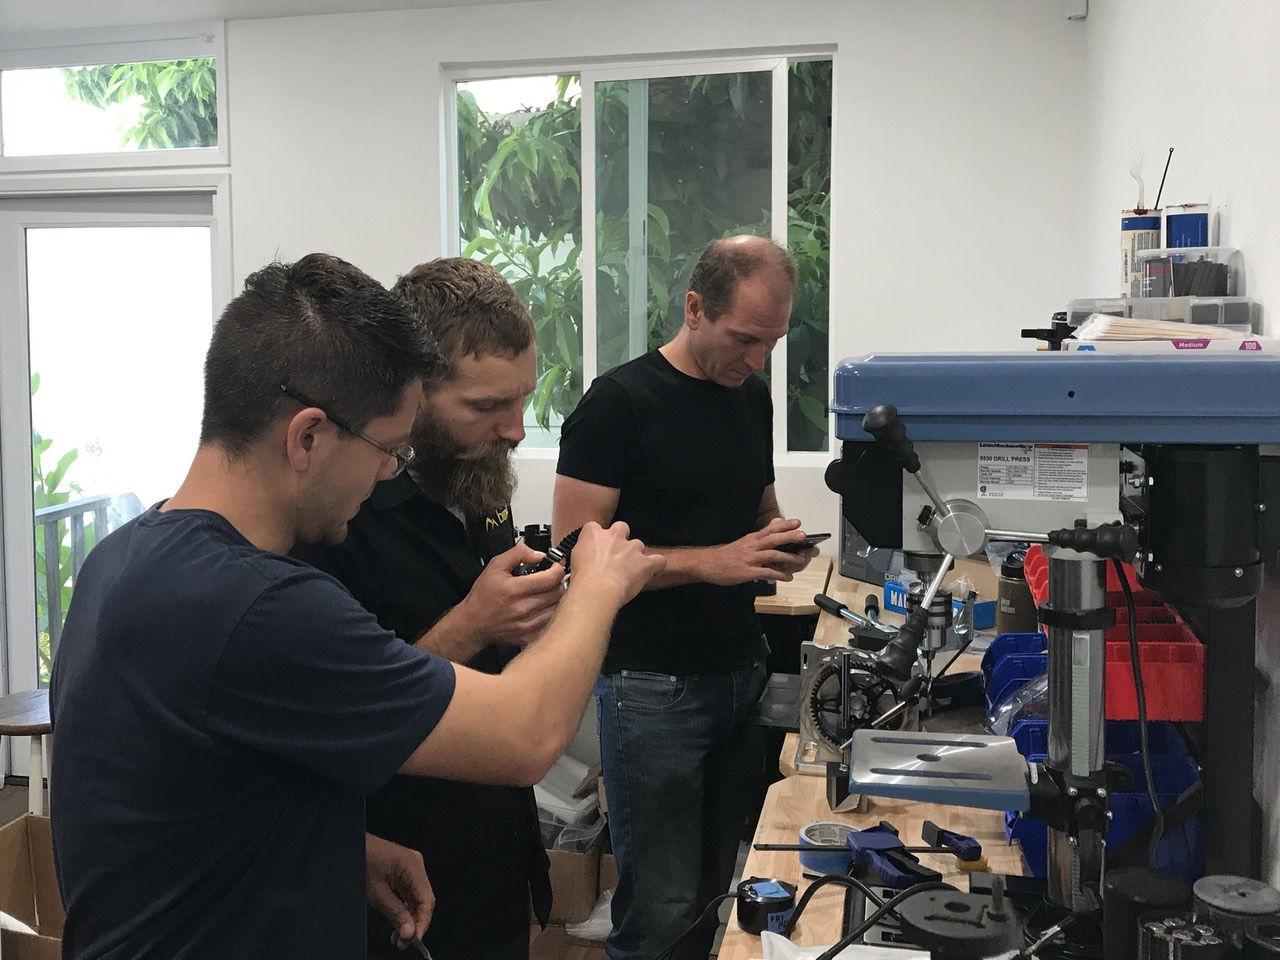 Bimotal engineers in assembly mode